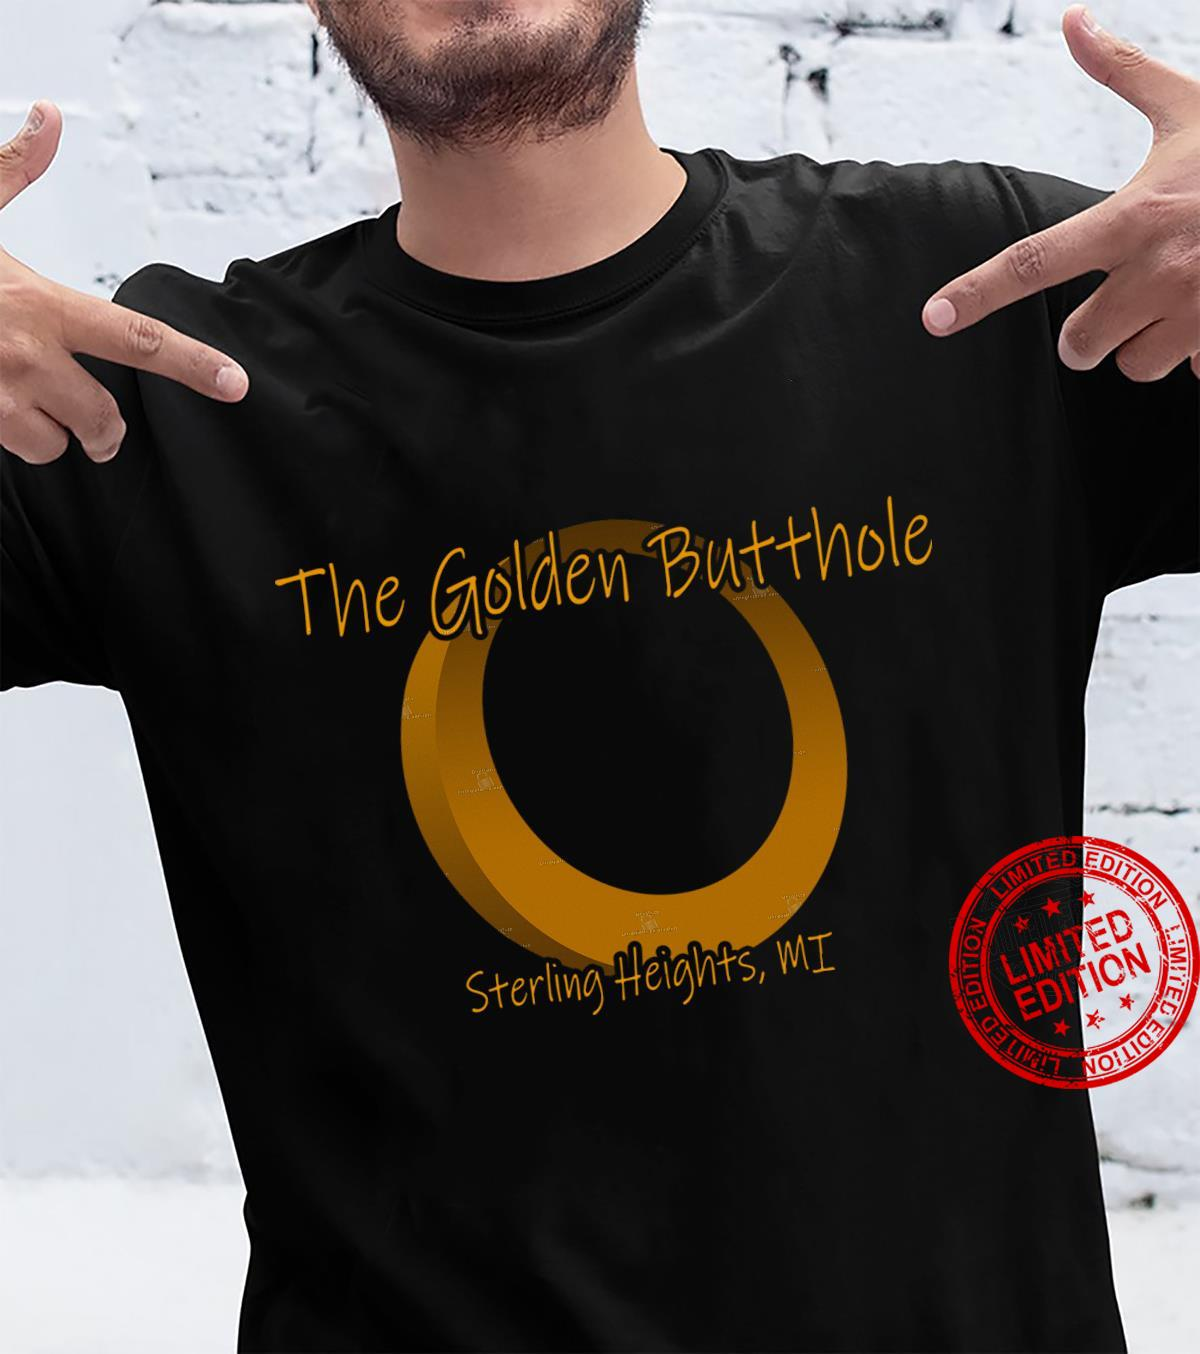 The Golden But Thole sterling heights shirt